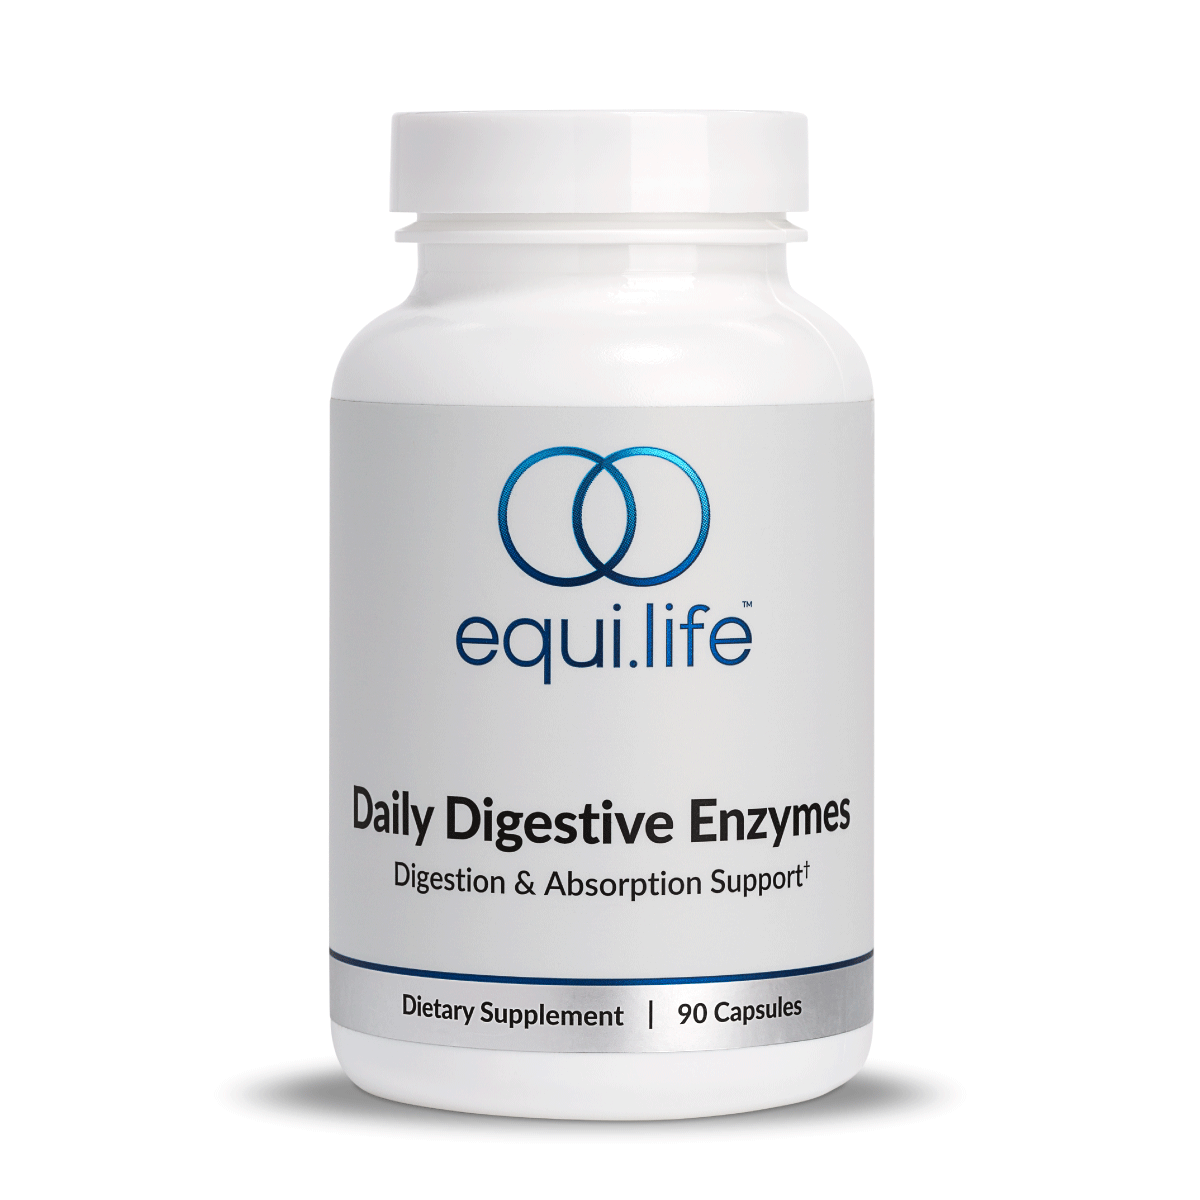 Daily Digestive Enzyme